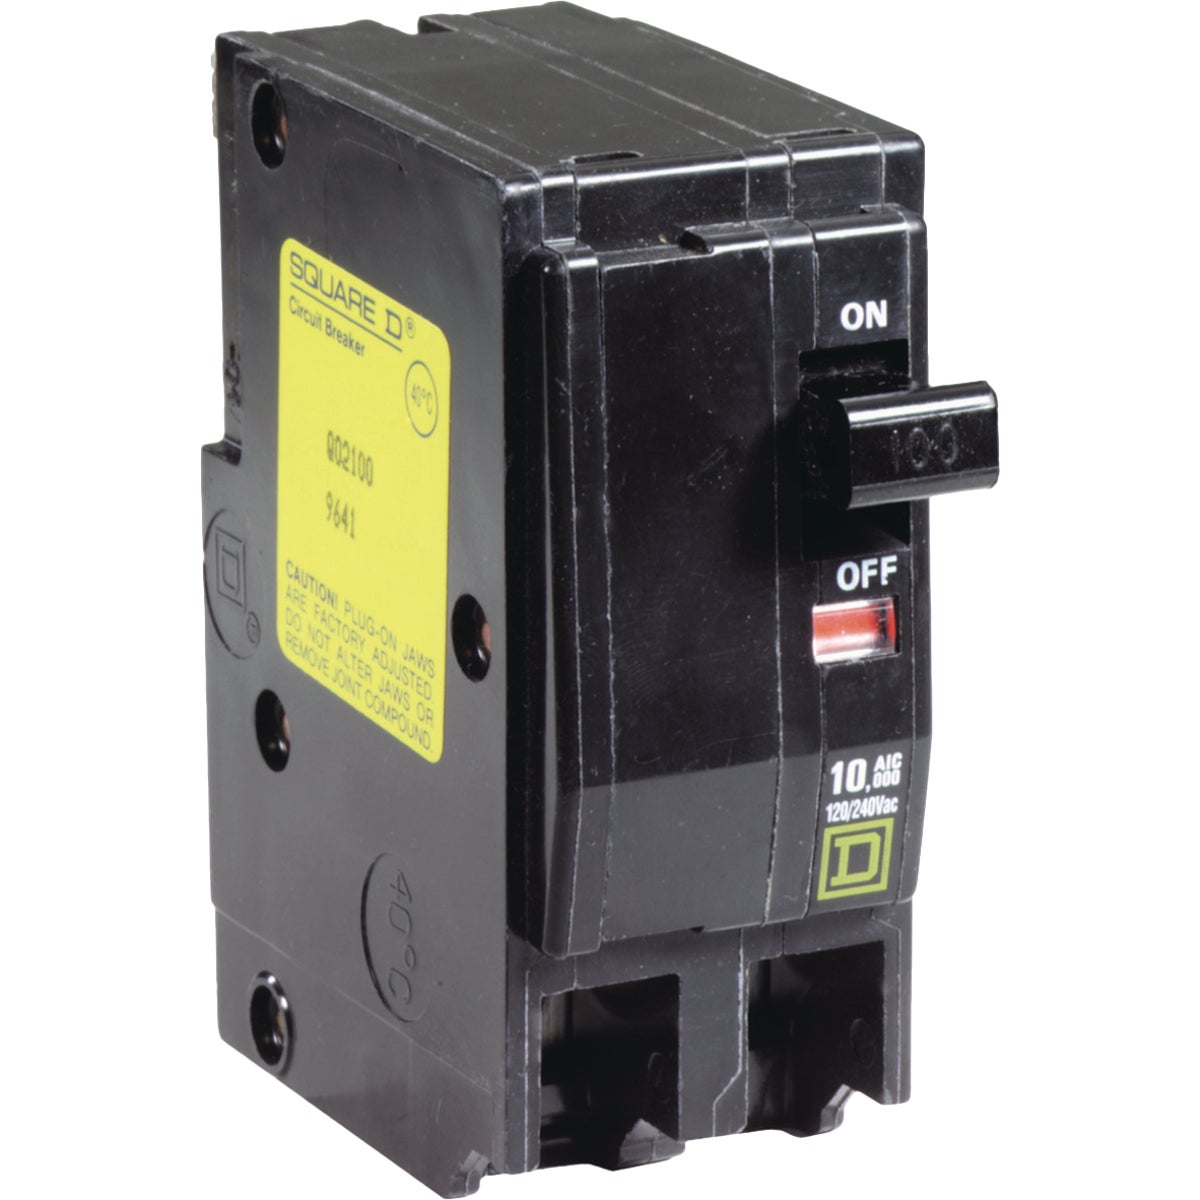 100A 2P CIRCUIT BREAKER - QO2100CP by Square D Co